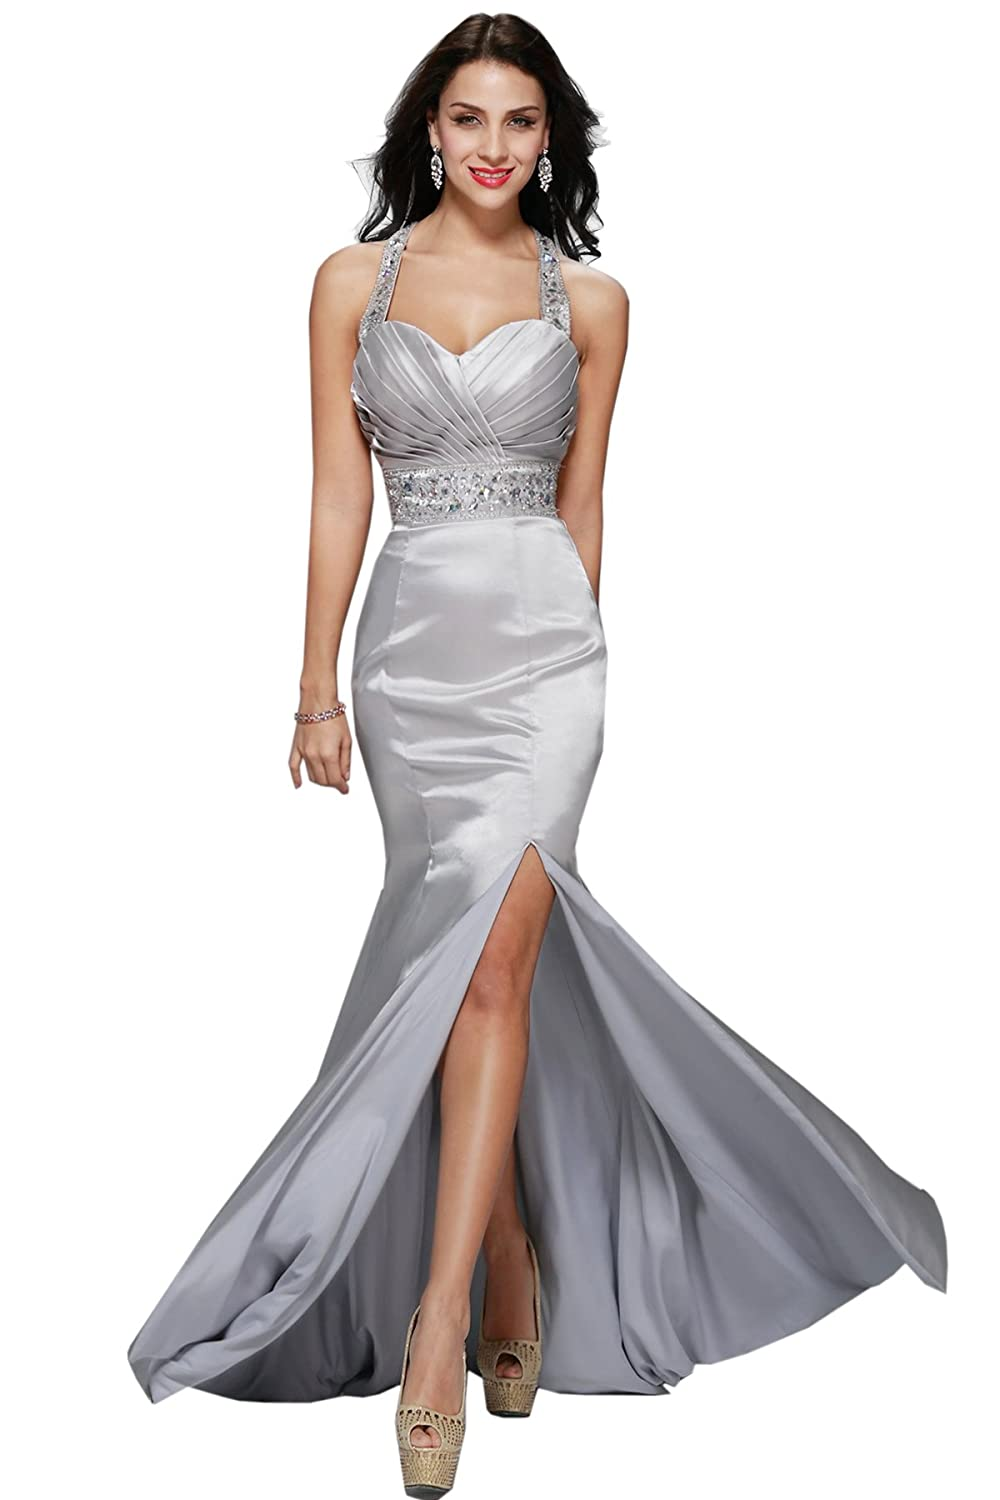 Womens Silver Metallic Mermaid Long Formal Evening Gown Bridesmaid Prom Dress E39 at Amazon Womens Clothing store: